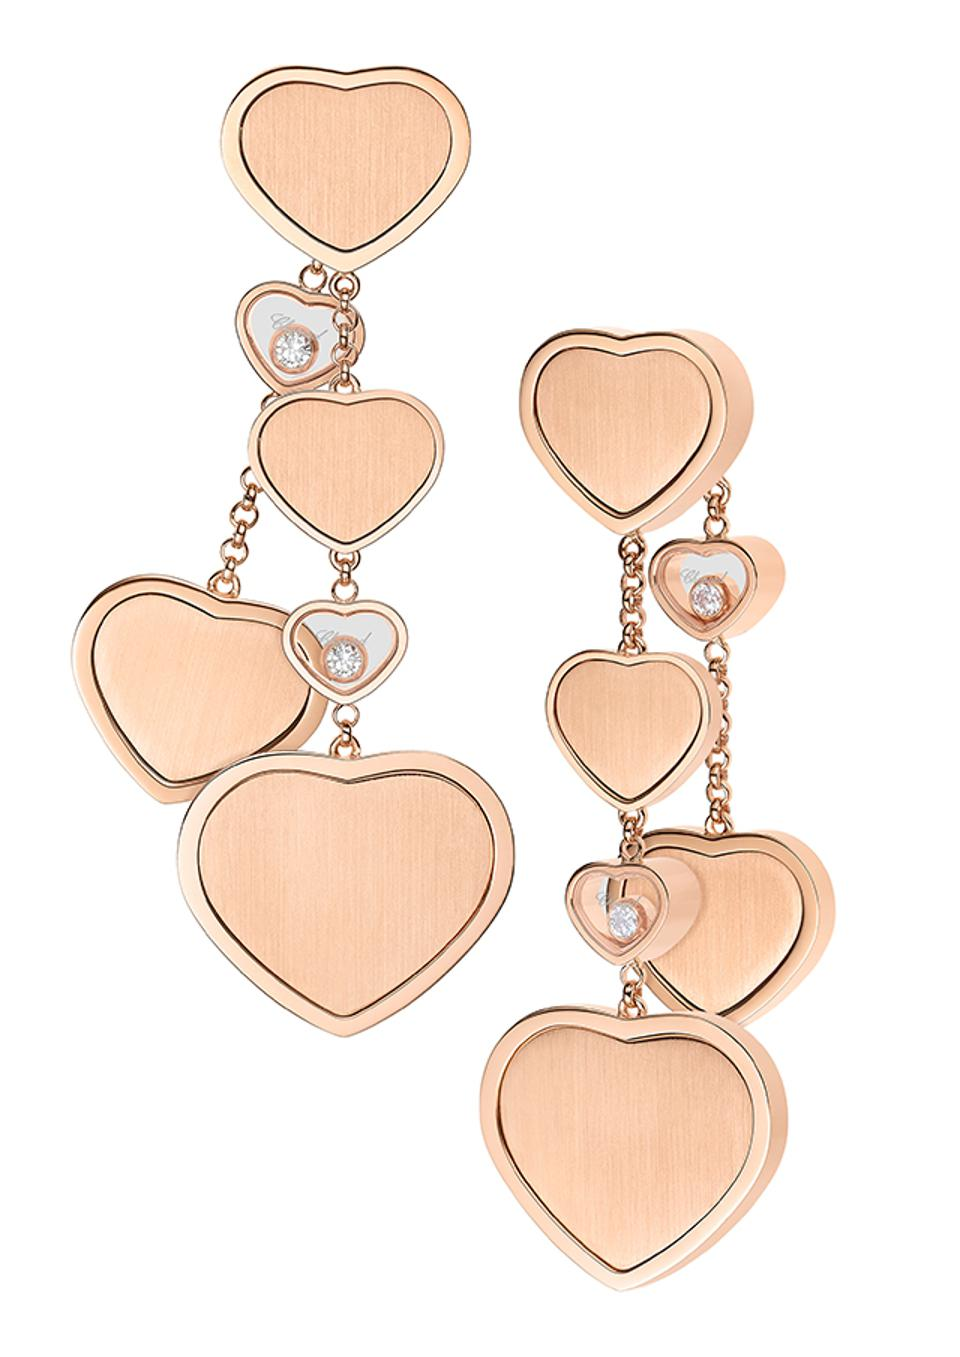 Earrings from the Chopard Happy Hearts Golden Hearts collection.